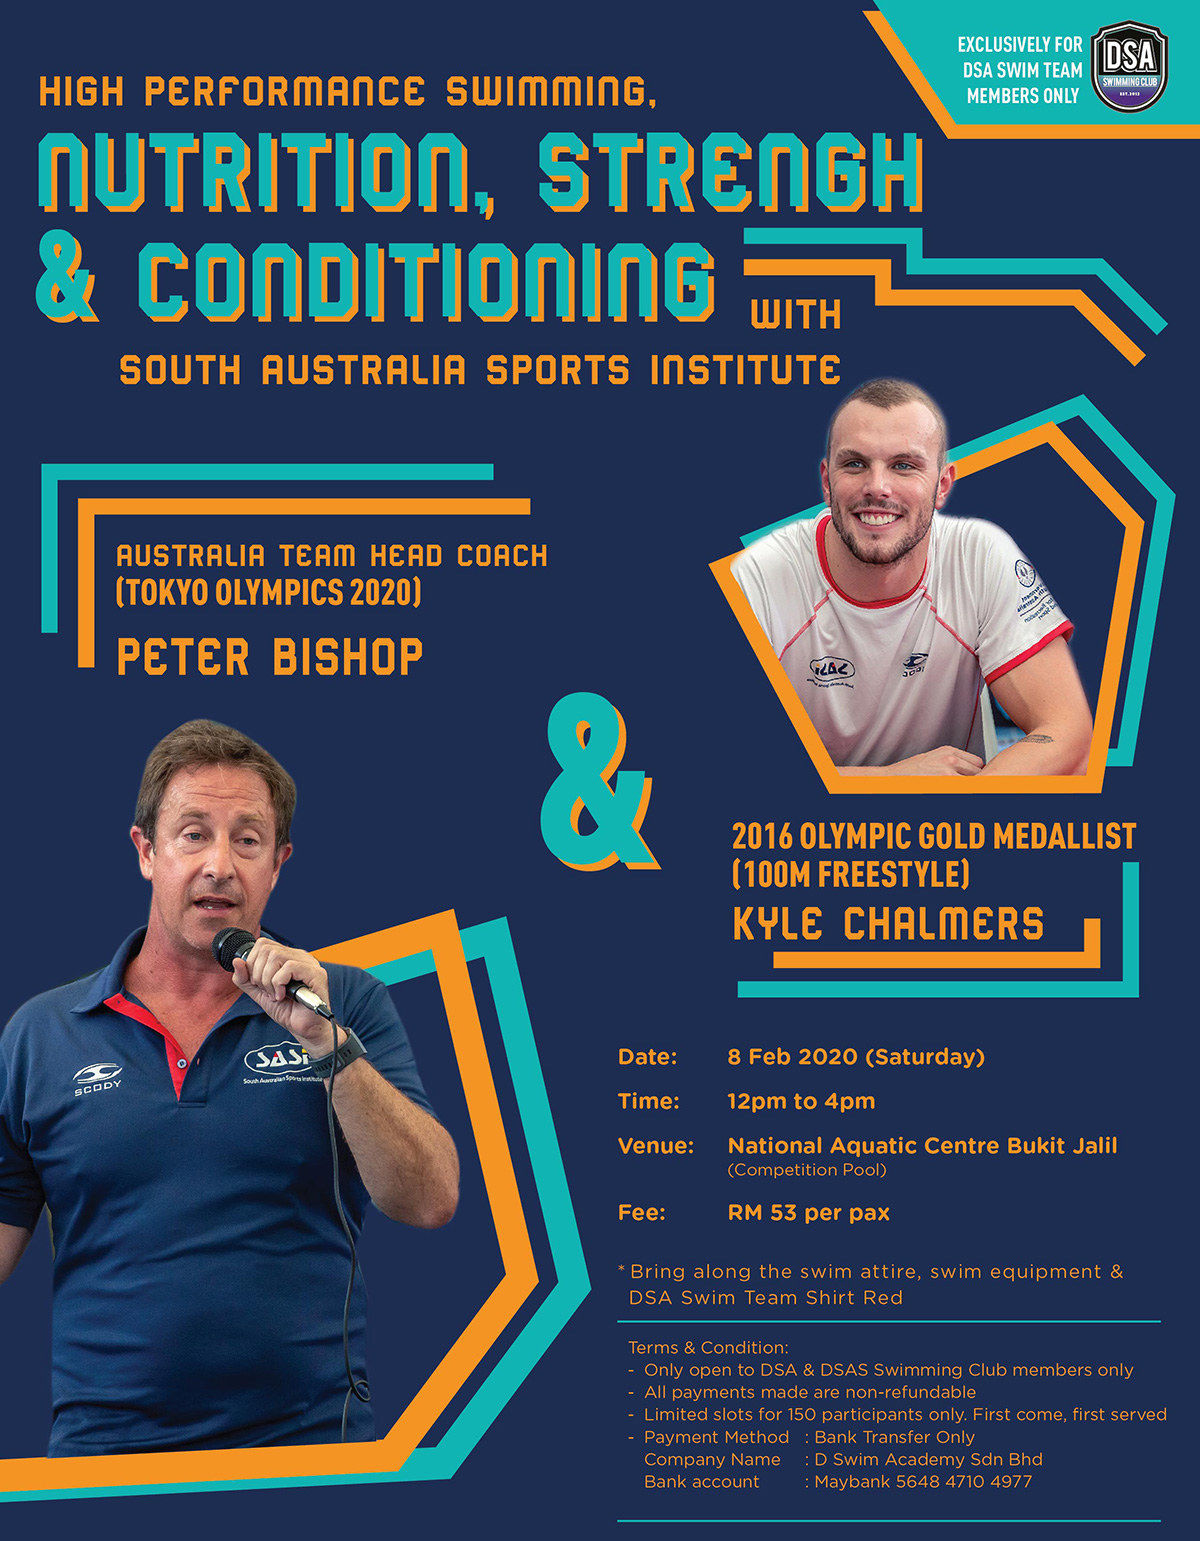 Swim Clinic by Peter Bishop & Meet Kyle Chalmers 2020